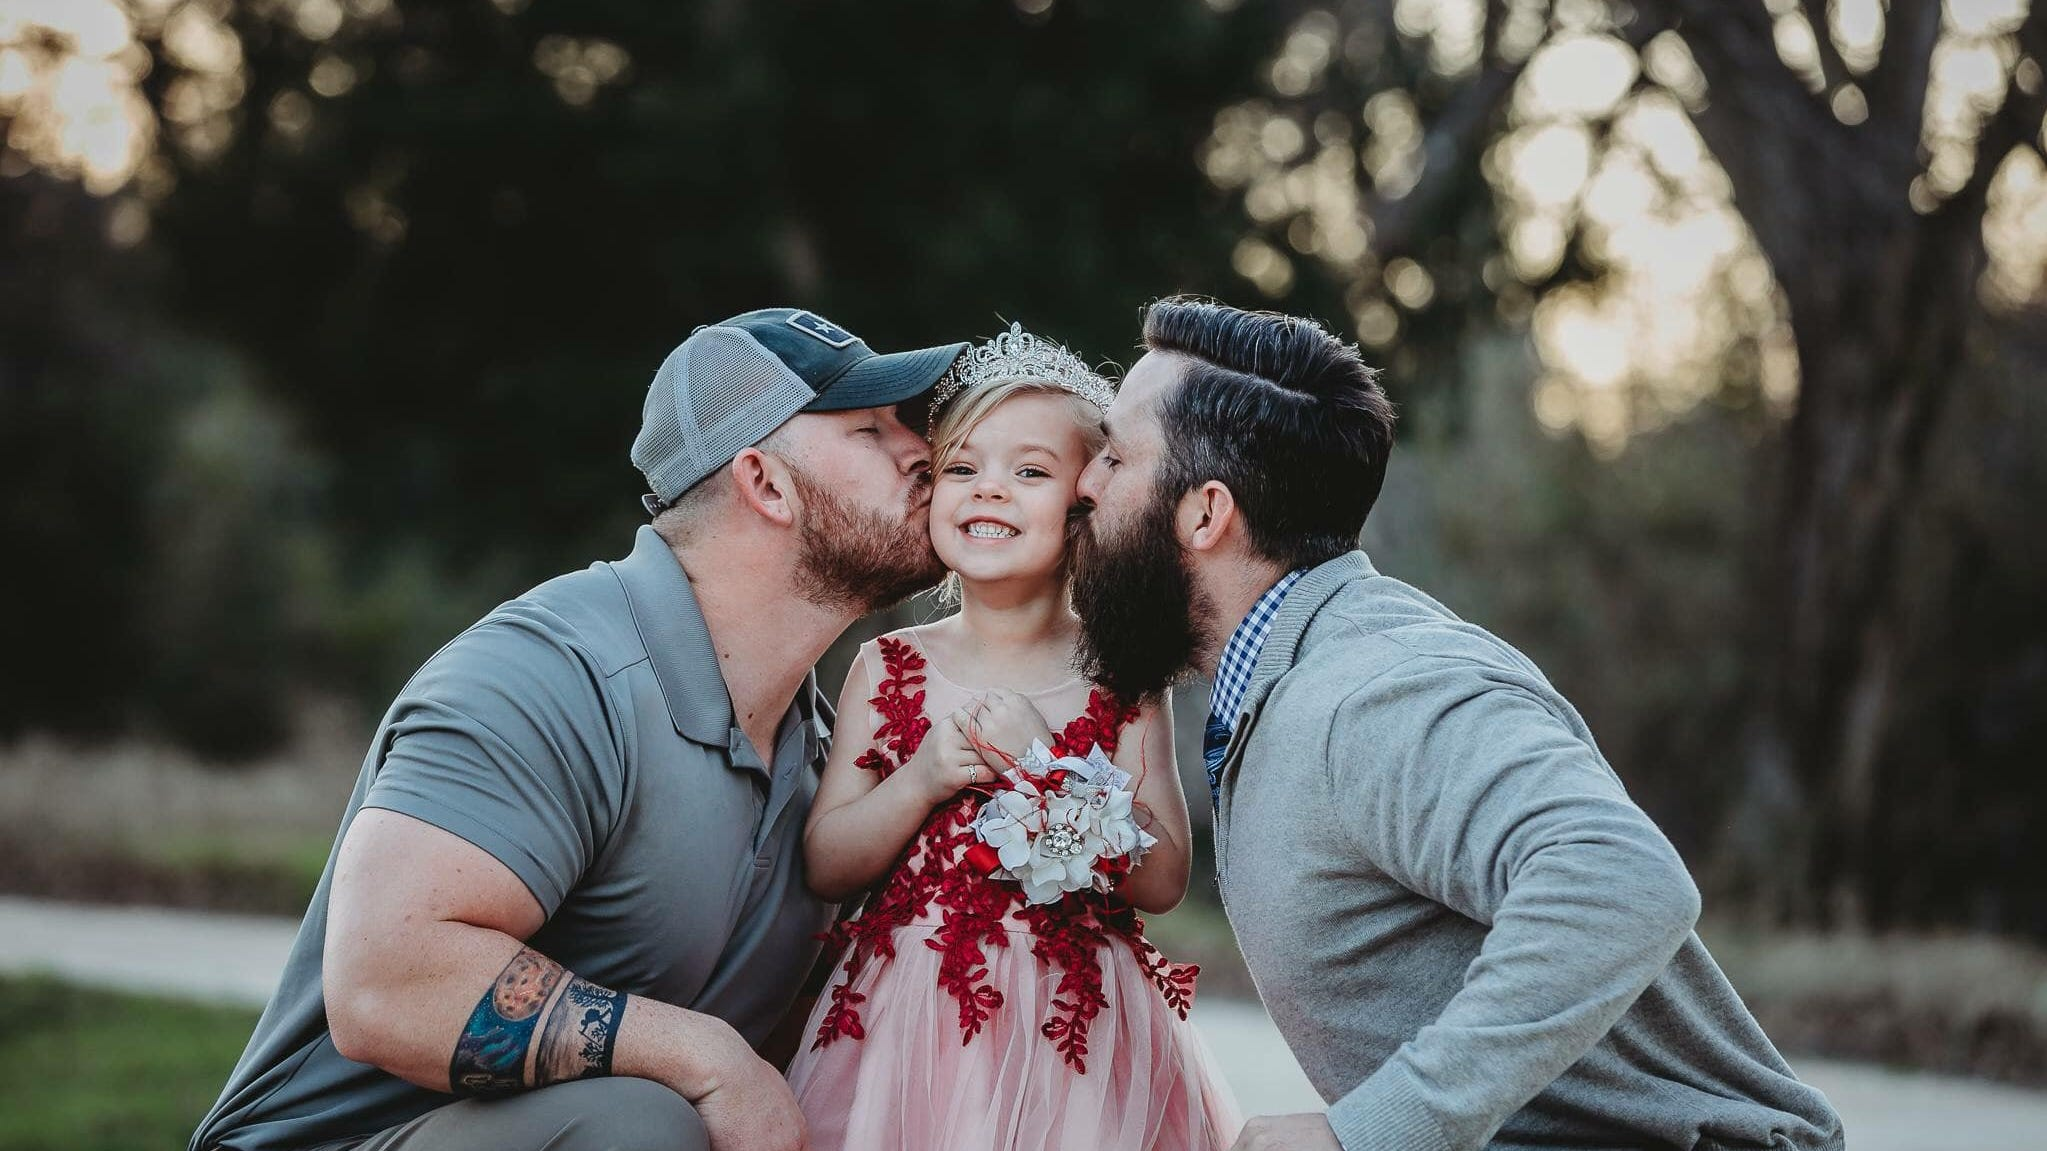 'We are not a same-sex couple, but we do share a daughter:' Man's blended-family post goes viral